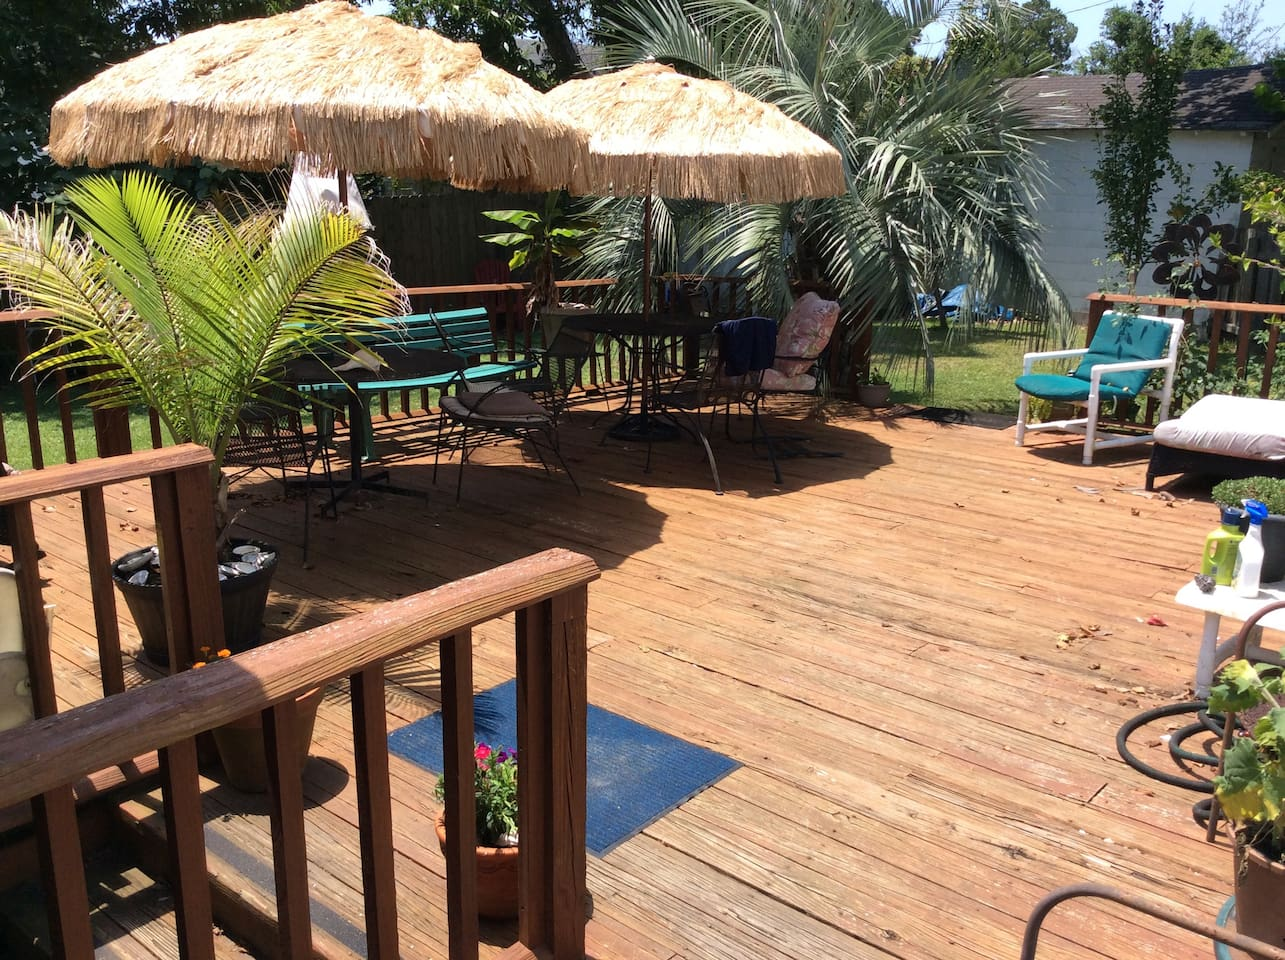 Large deck and grill available for relaxing.